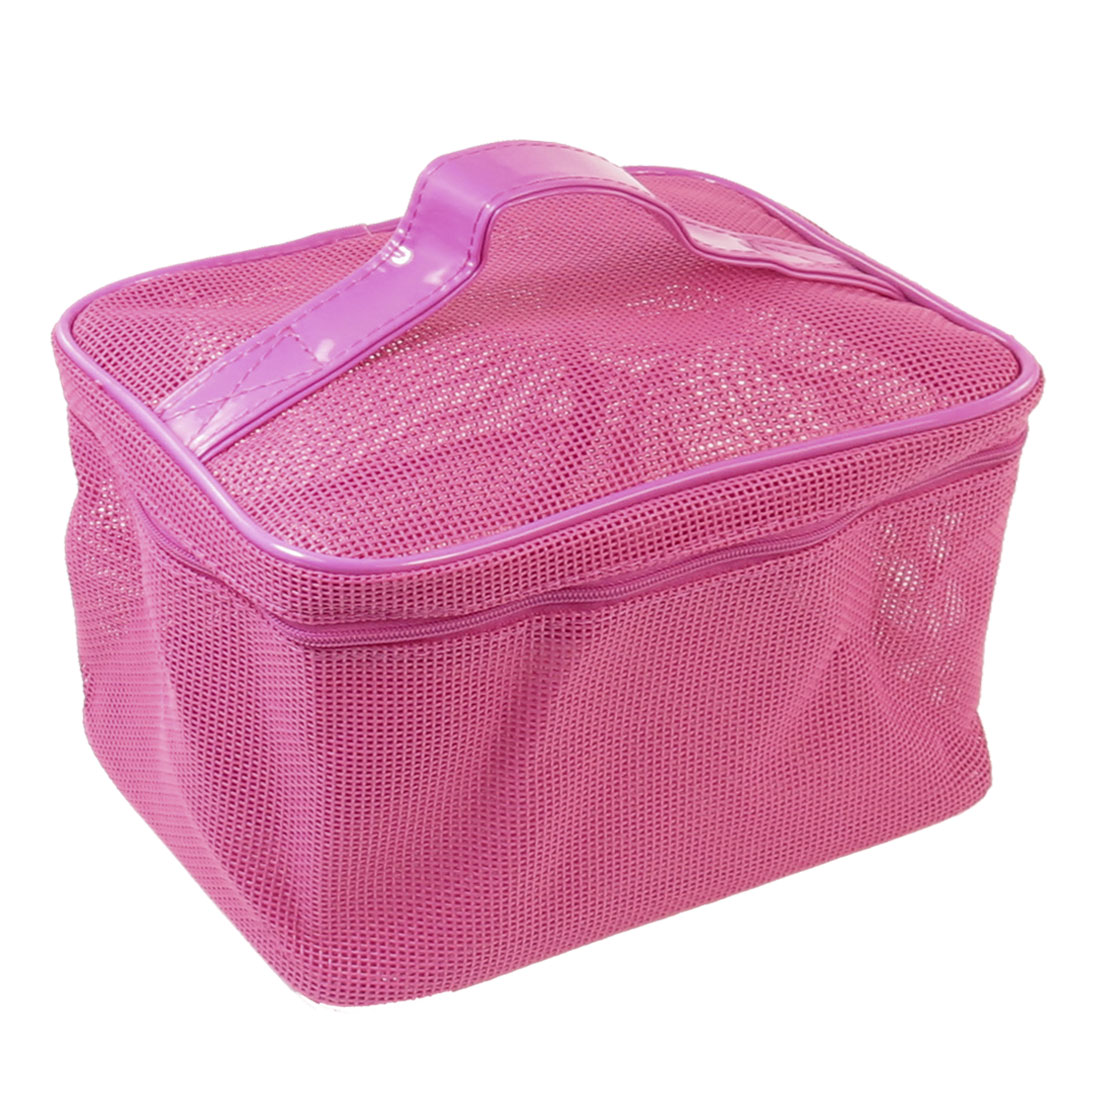 Zipper Closure Fuchsia Plastic Makeup Cosmetic Bag Handbag for Ladies Woman